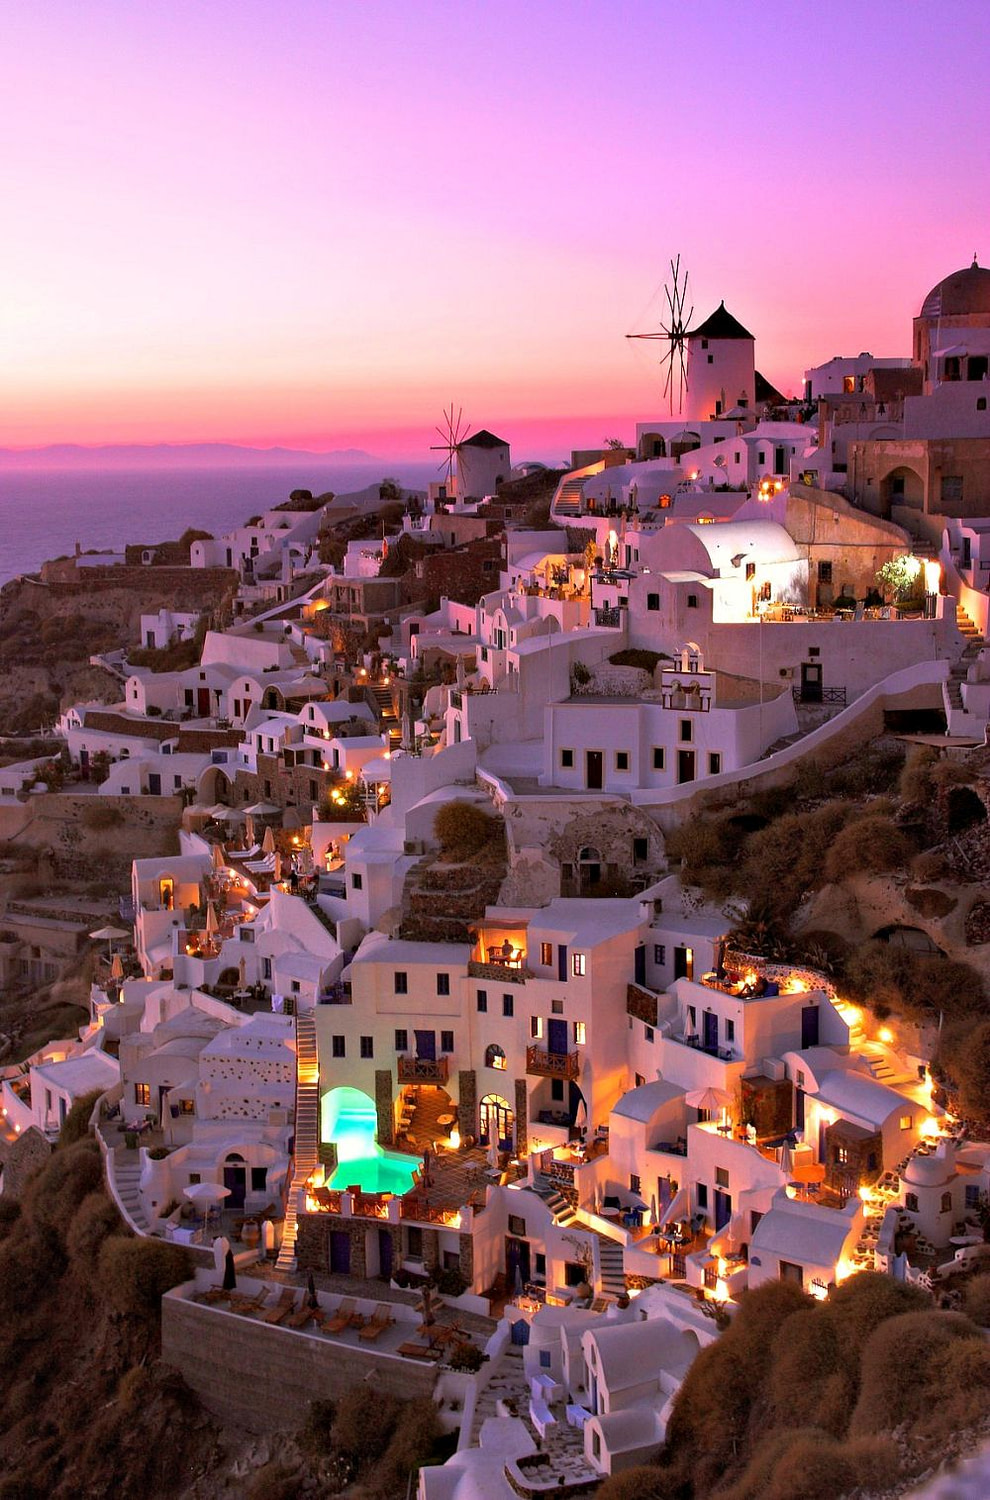 Cliffside houses in Oia